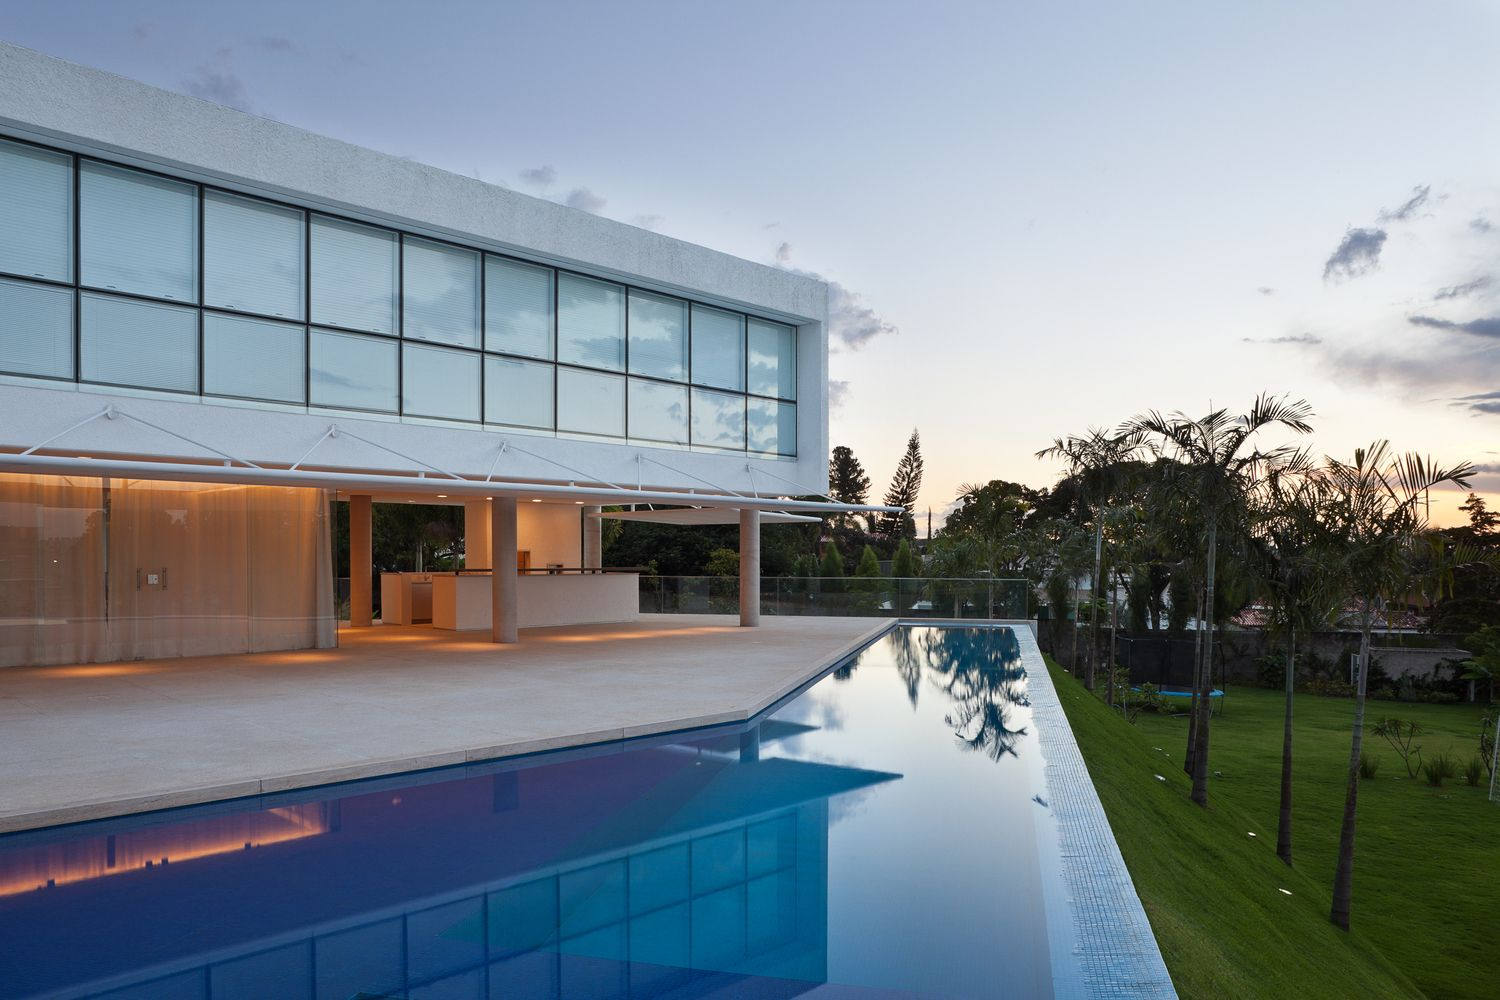 Gallery Of Material Focus House In Lago Sul Qi 25 By Sergio Parada Arquitetos Associados 13 House Architecture House Architecture